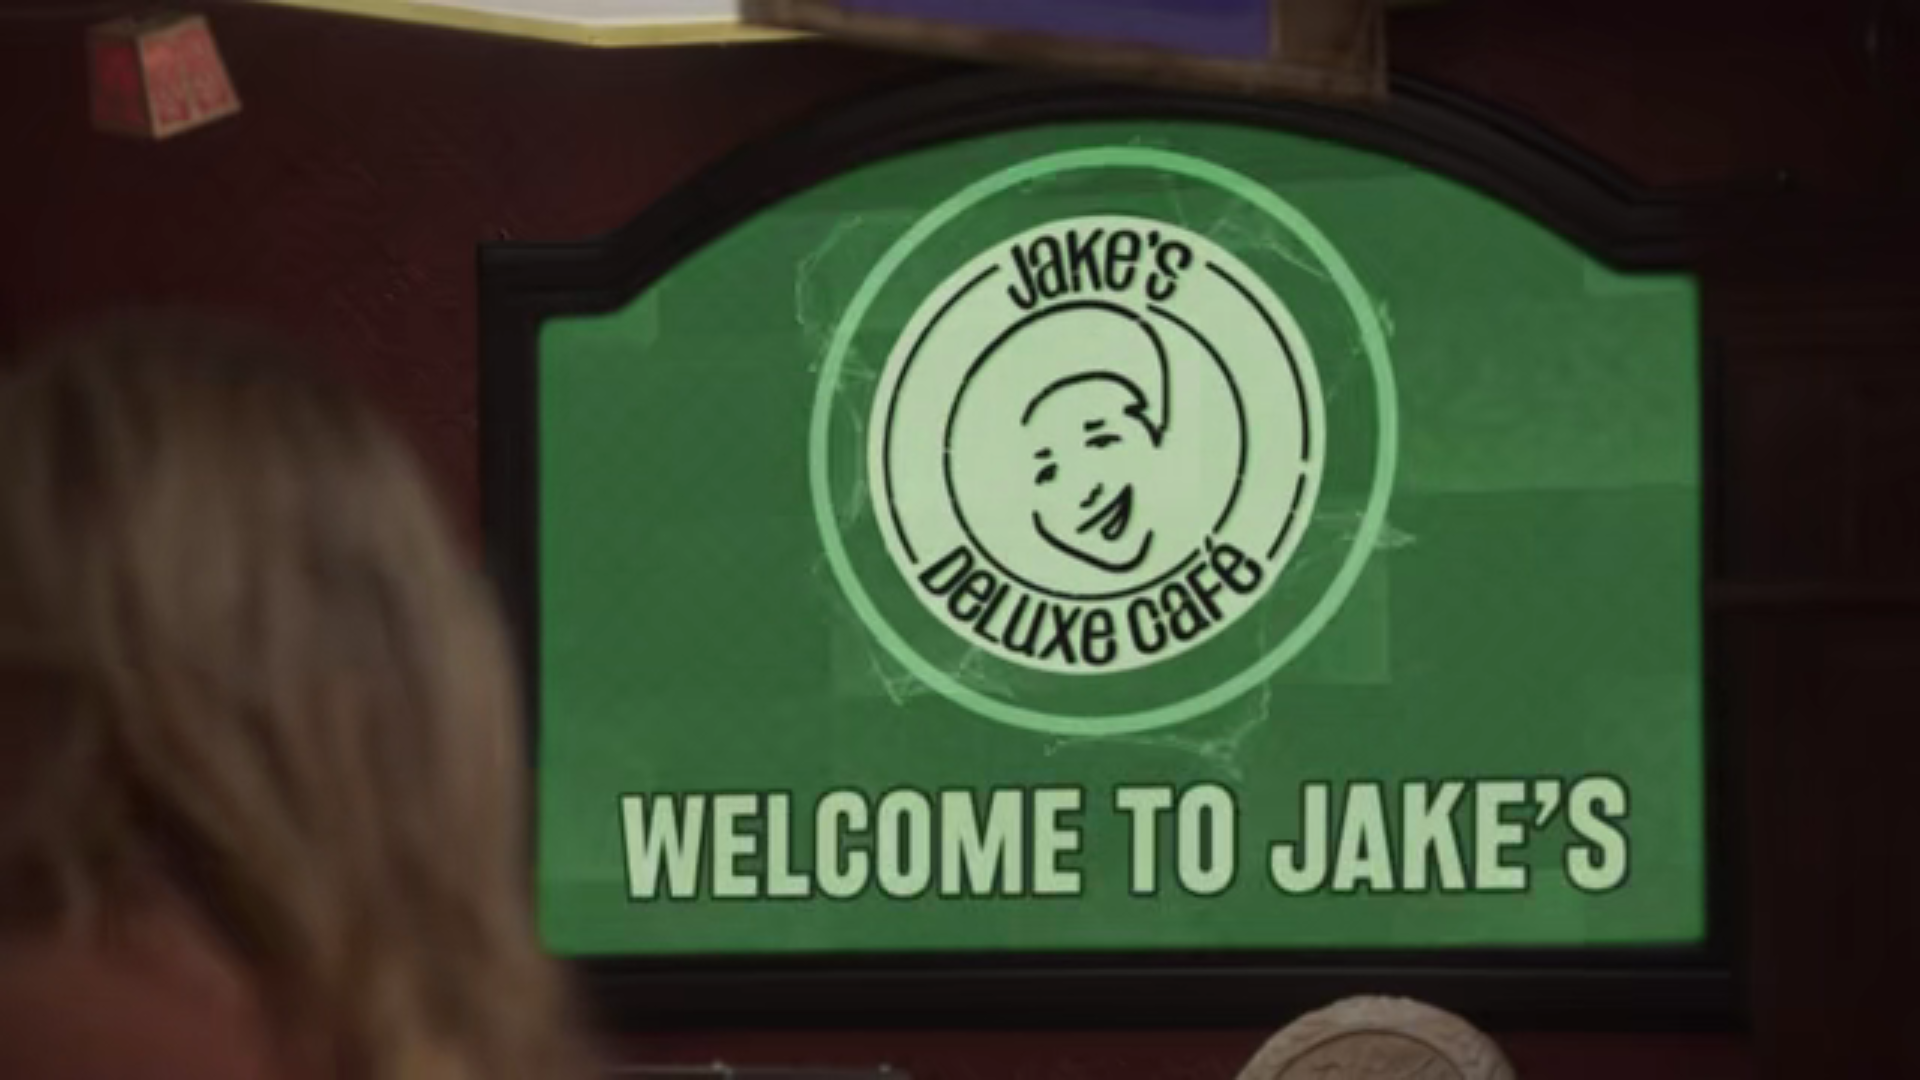 Jake's Deluxe Cafe